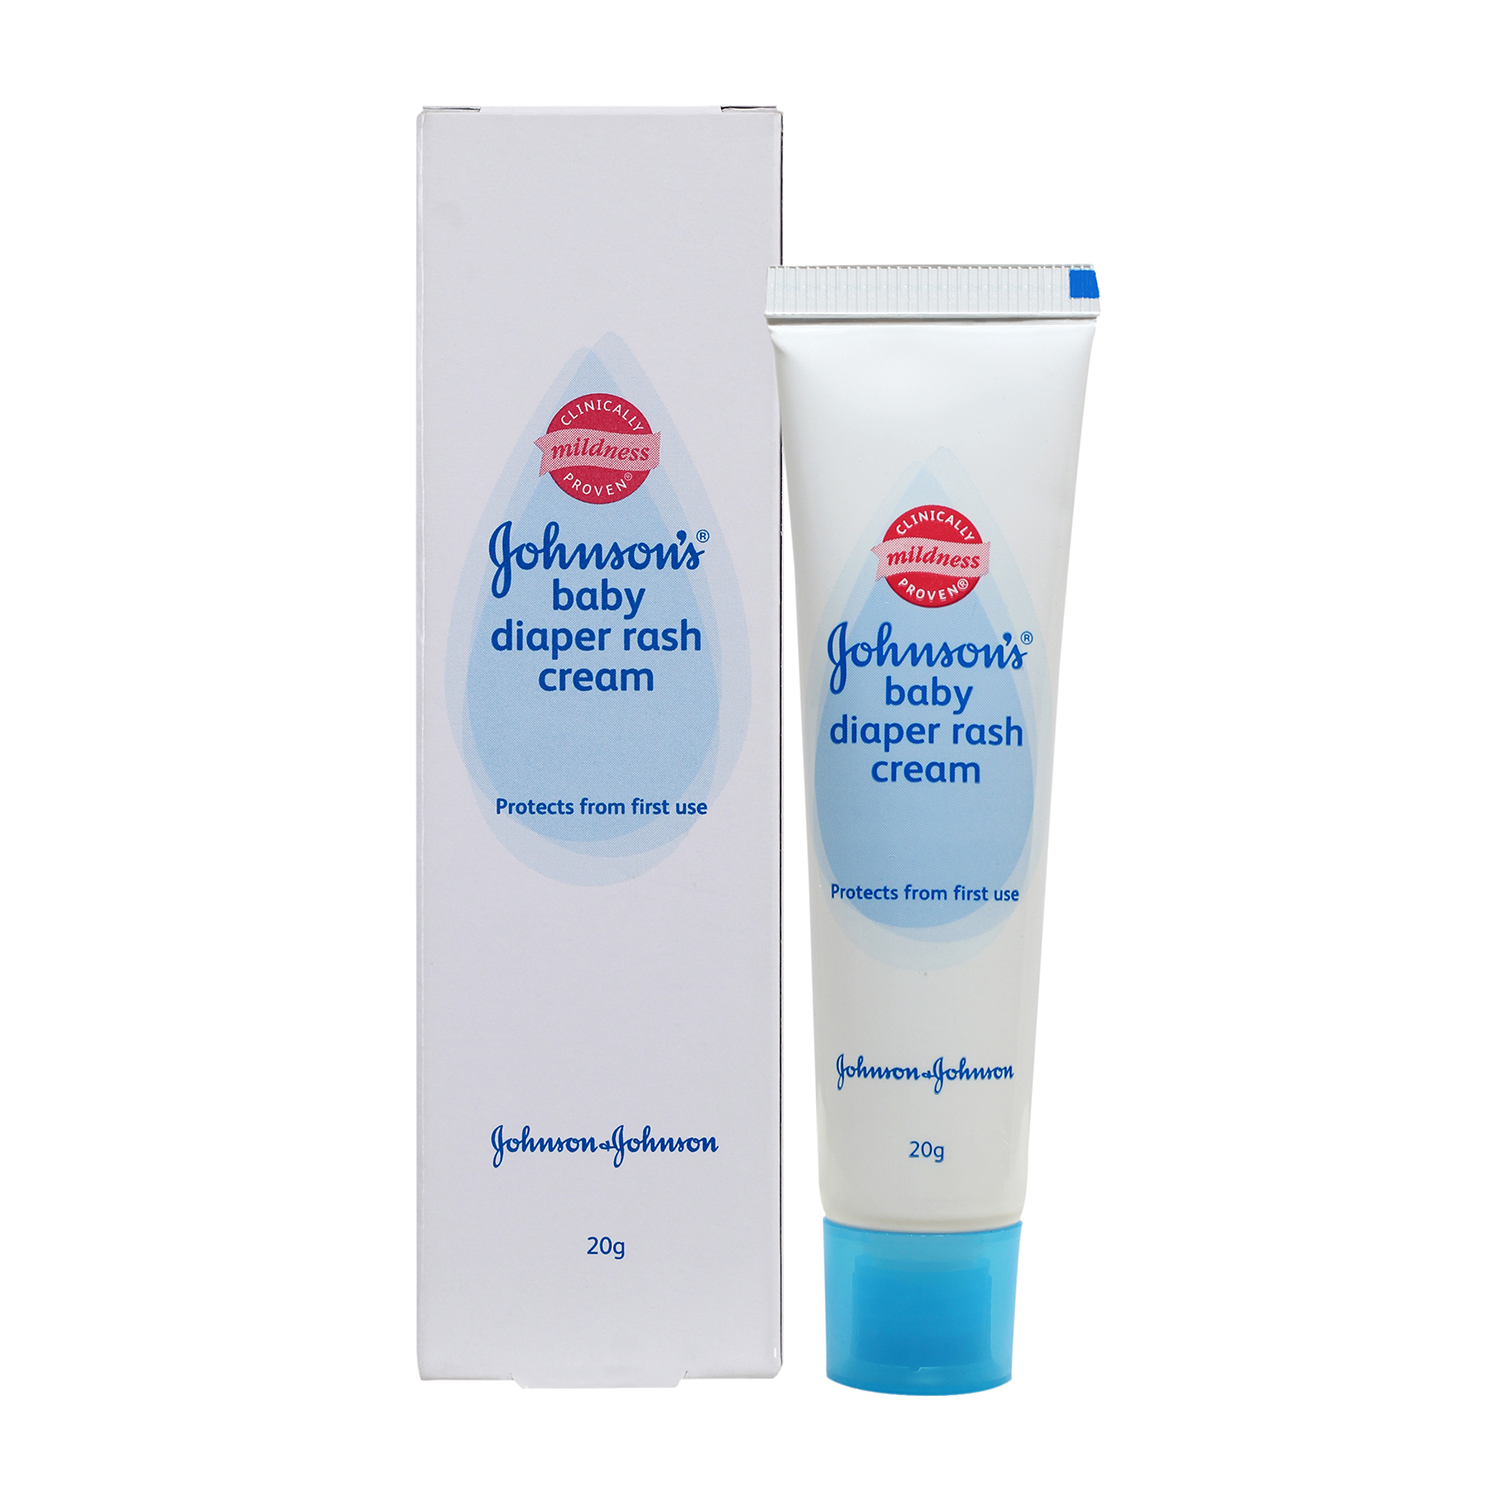 J&J Baby Diaper Rash Cream - 20 gm